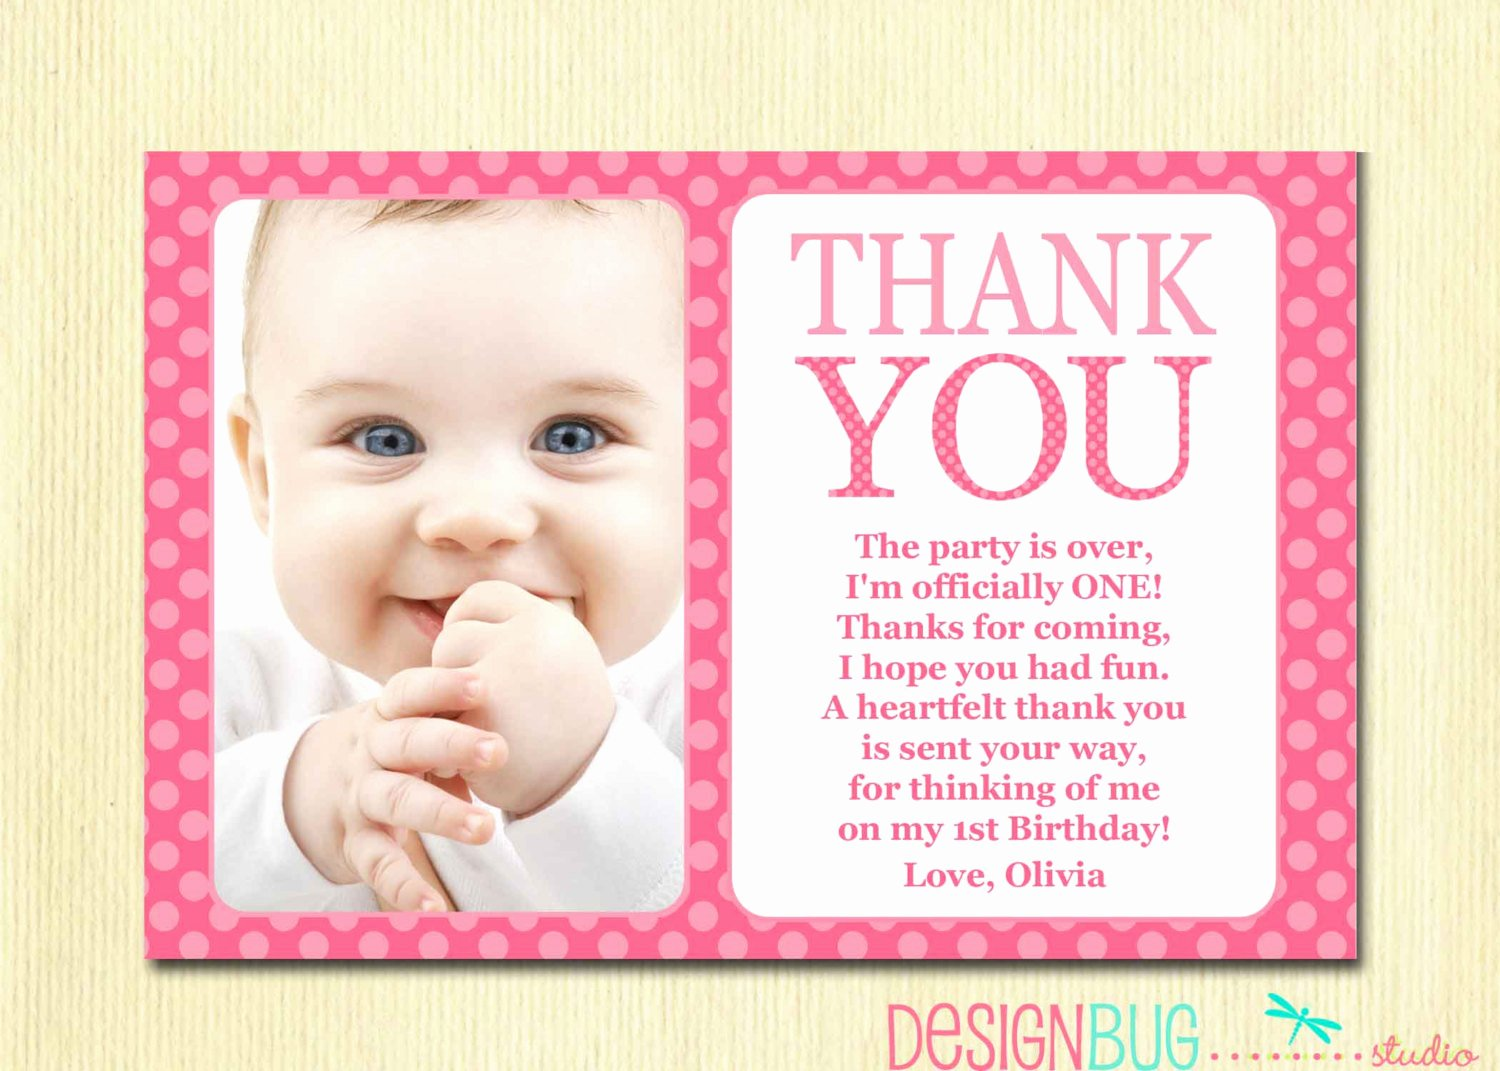 1st Birthday Thank You Cards Fresh First Birthday Matching Thank You Card 4x6 the Big One Diy